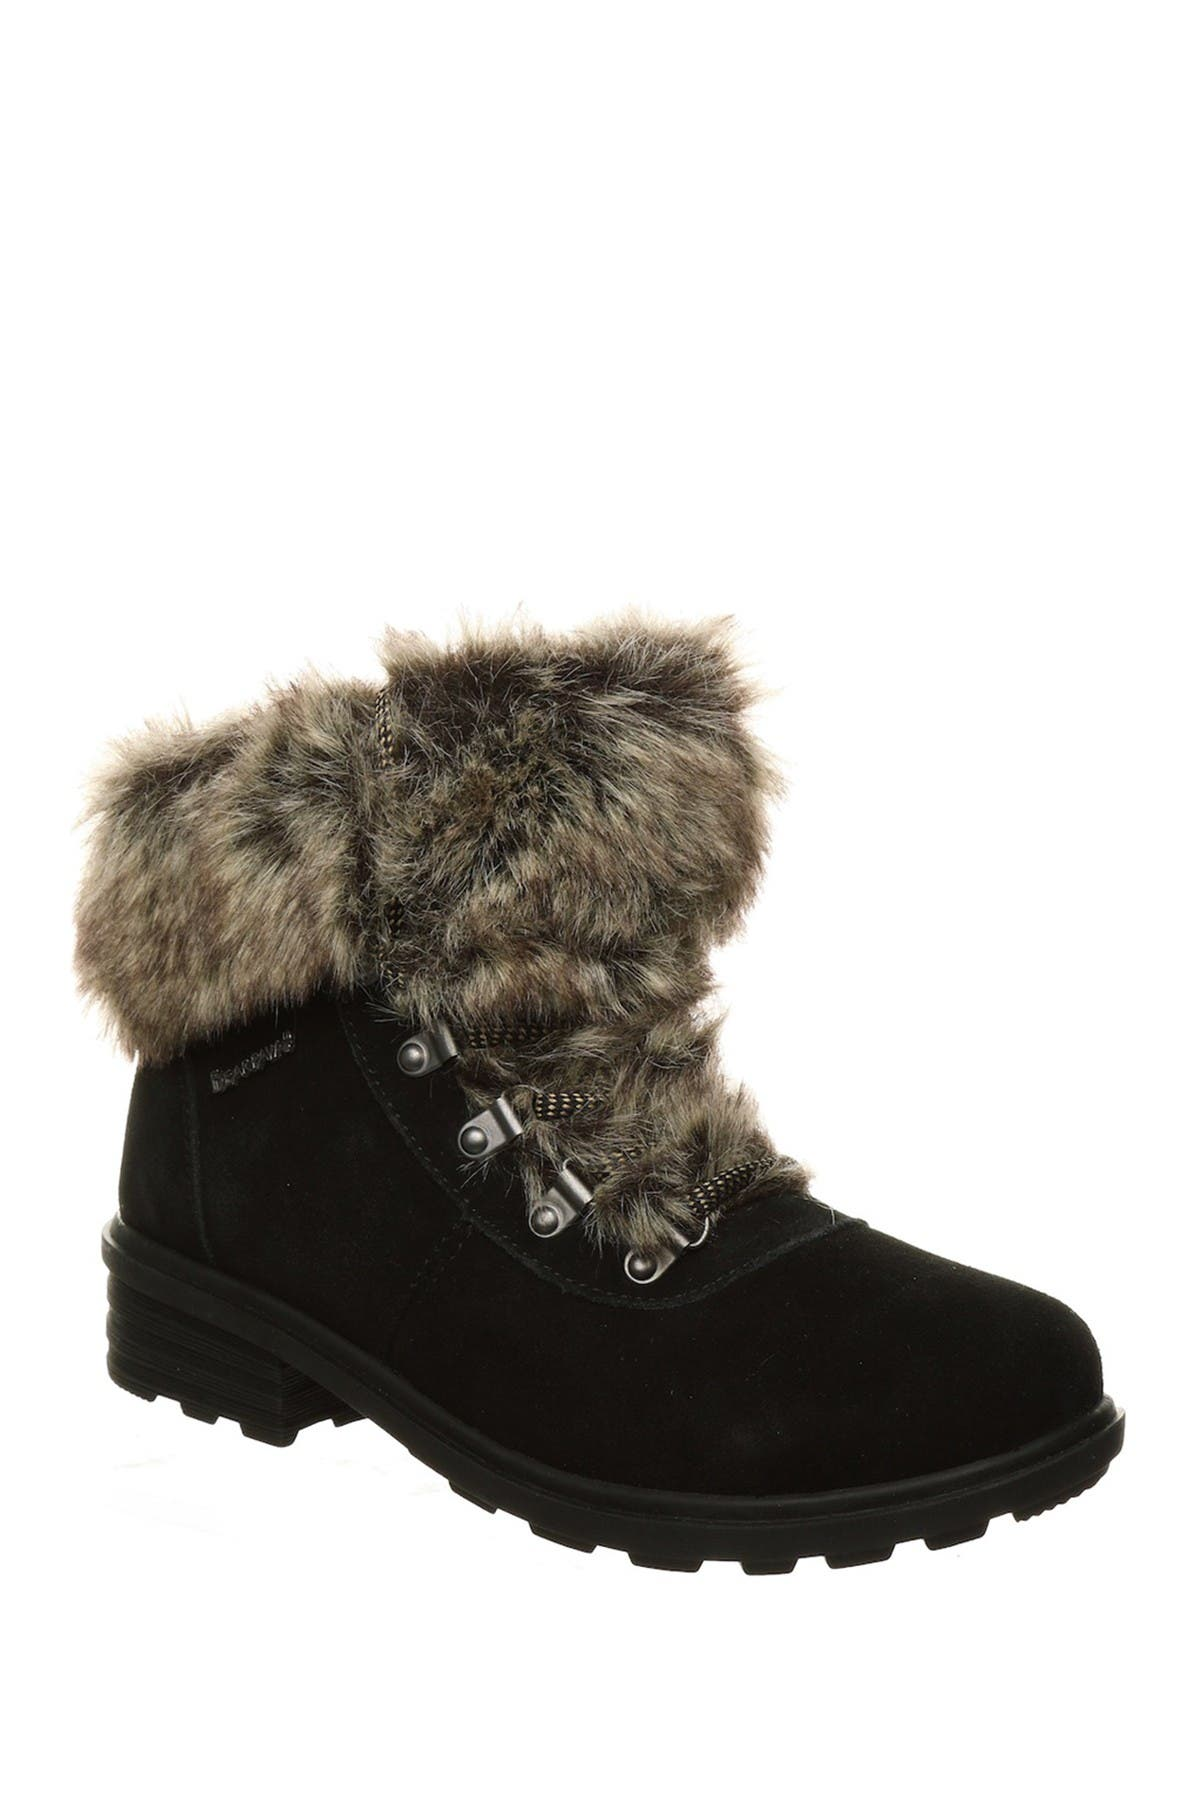 Image of BEARPAW Serenity Faux Fur Lace-Up Boot